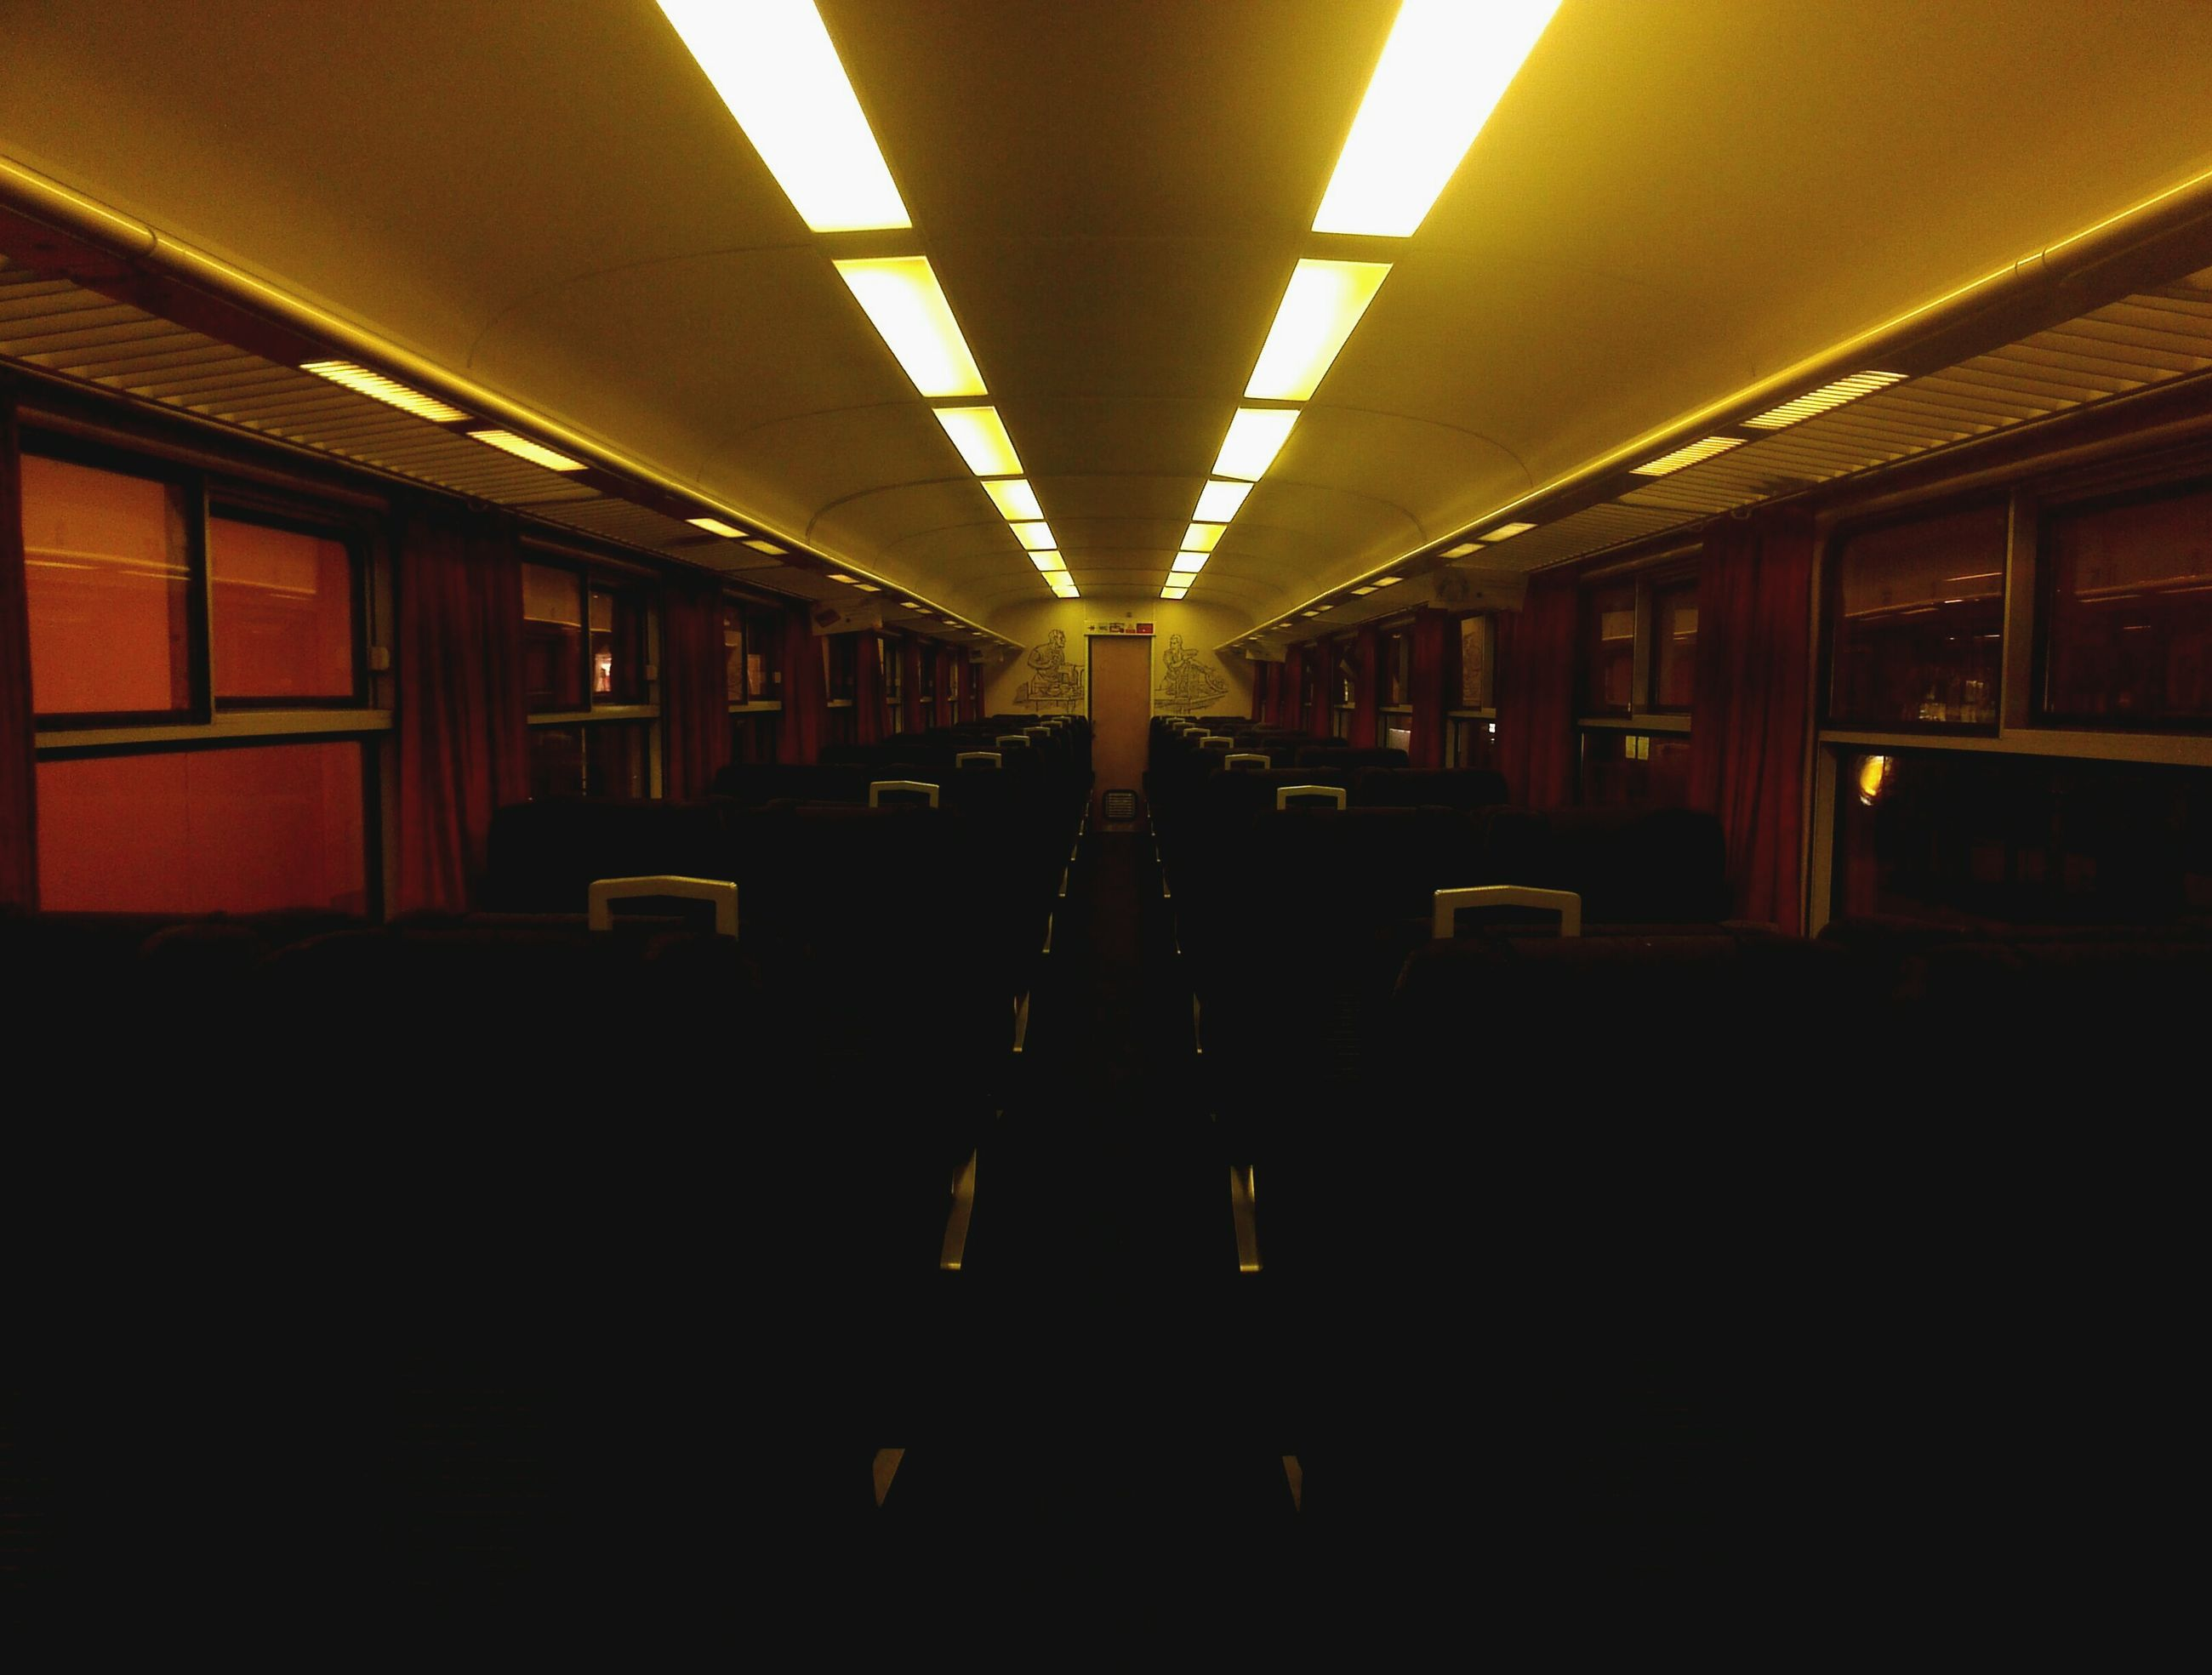 indoors, transportation, illuminated, mode of transport, public transportation, railroad station platform, architecture, built structure, railroad station, travel, empty, train - vehicle, rail transportation, window, train, vehicle seat, passenger train, dark, public transport, interior